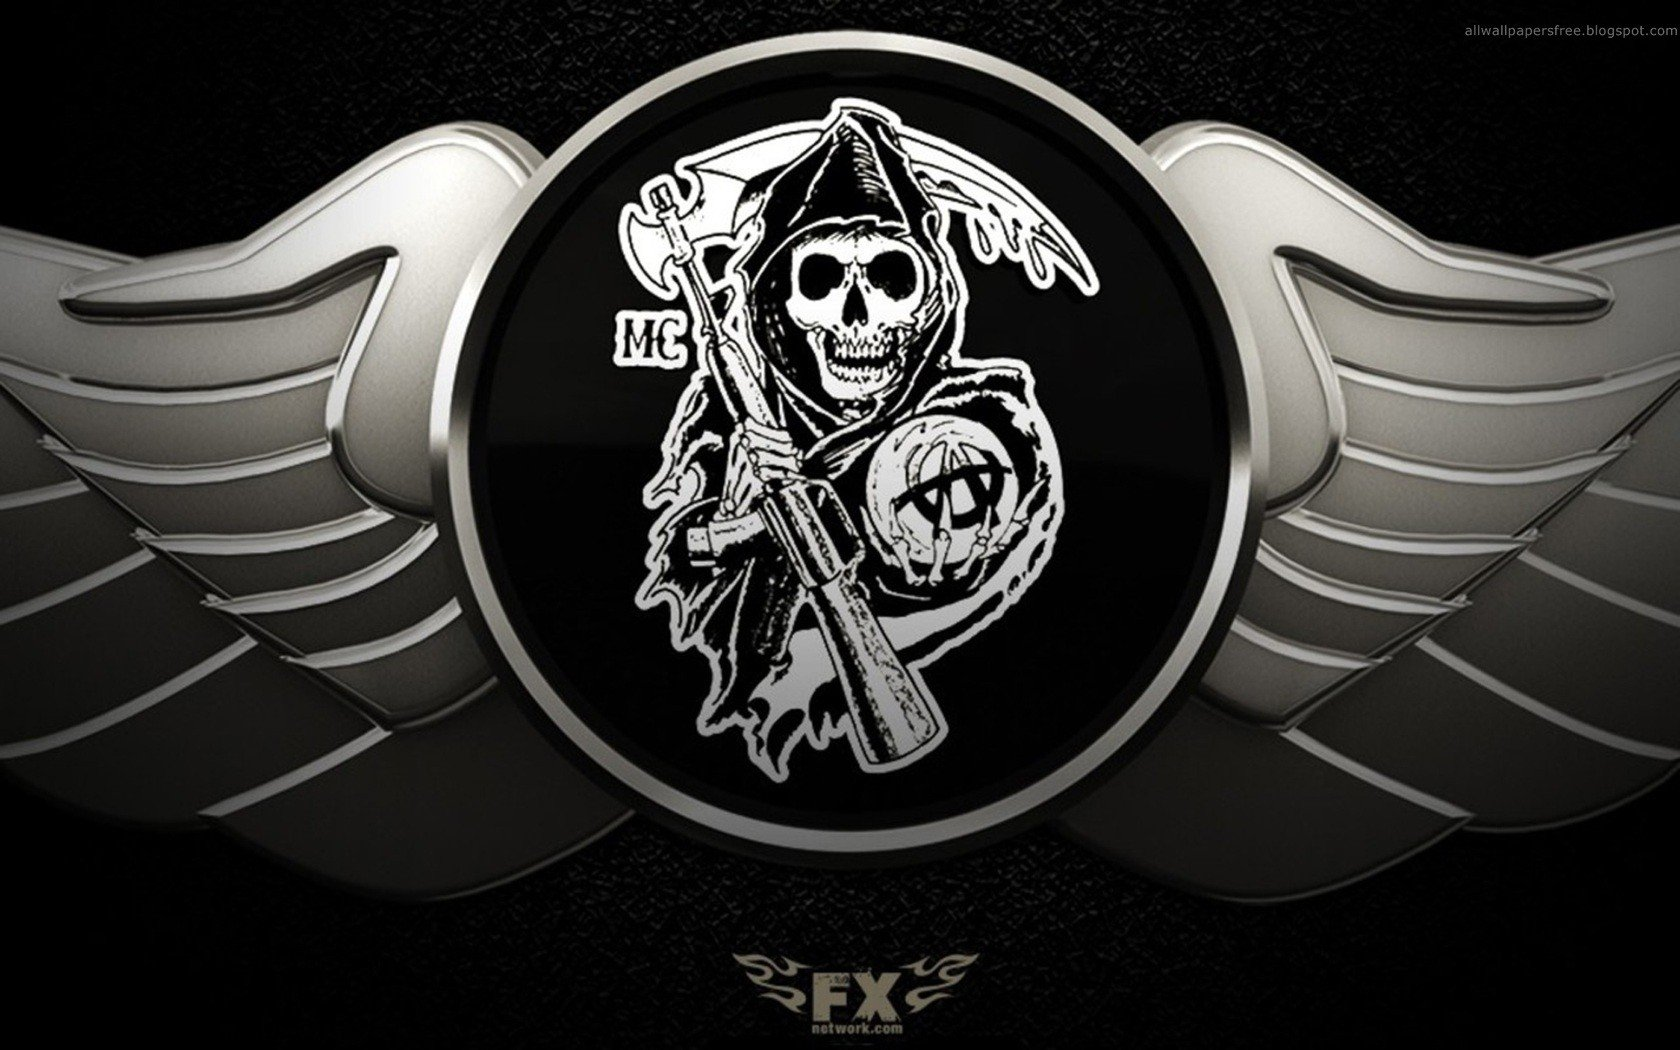 Sons Of Anarchy Wallpapers 1680x1050 Desktop Backgrounds